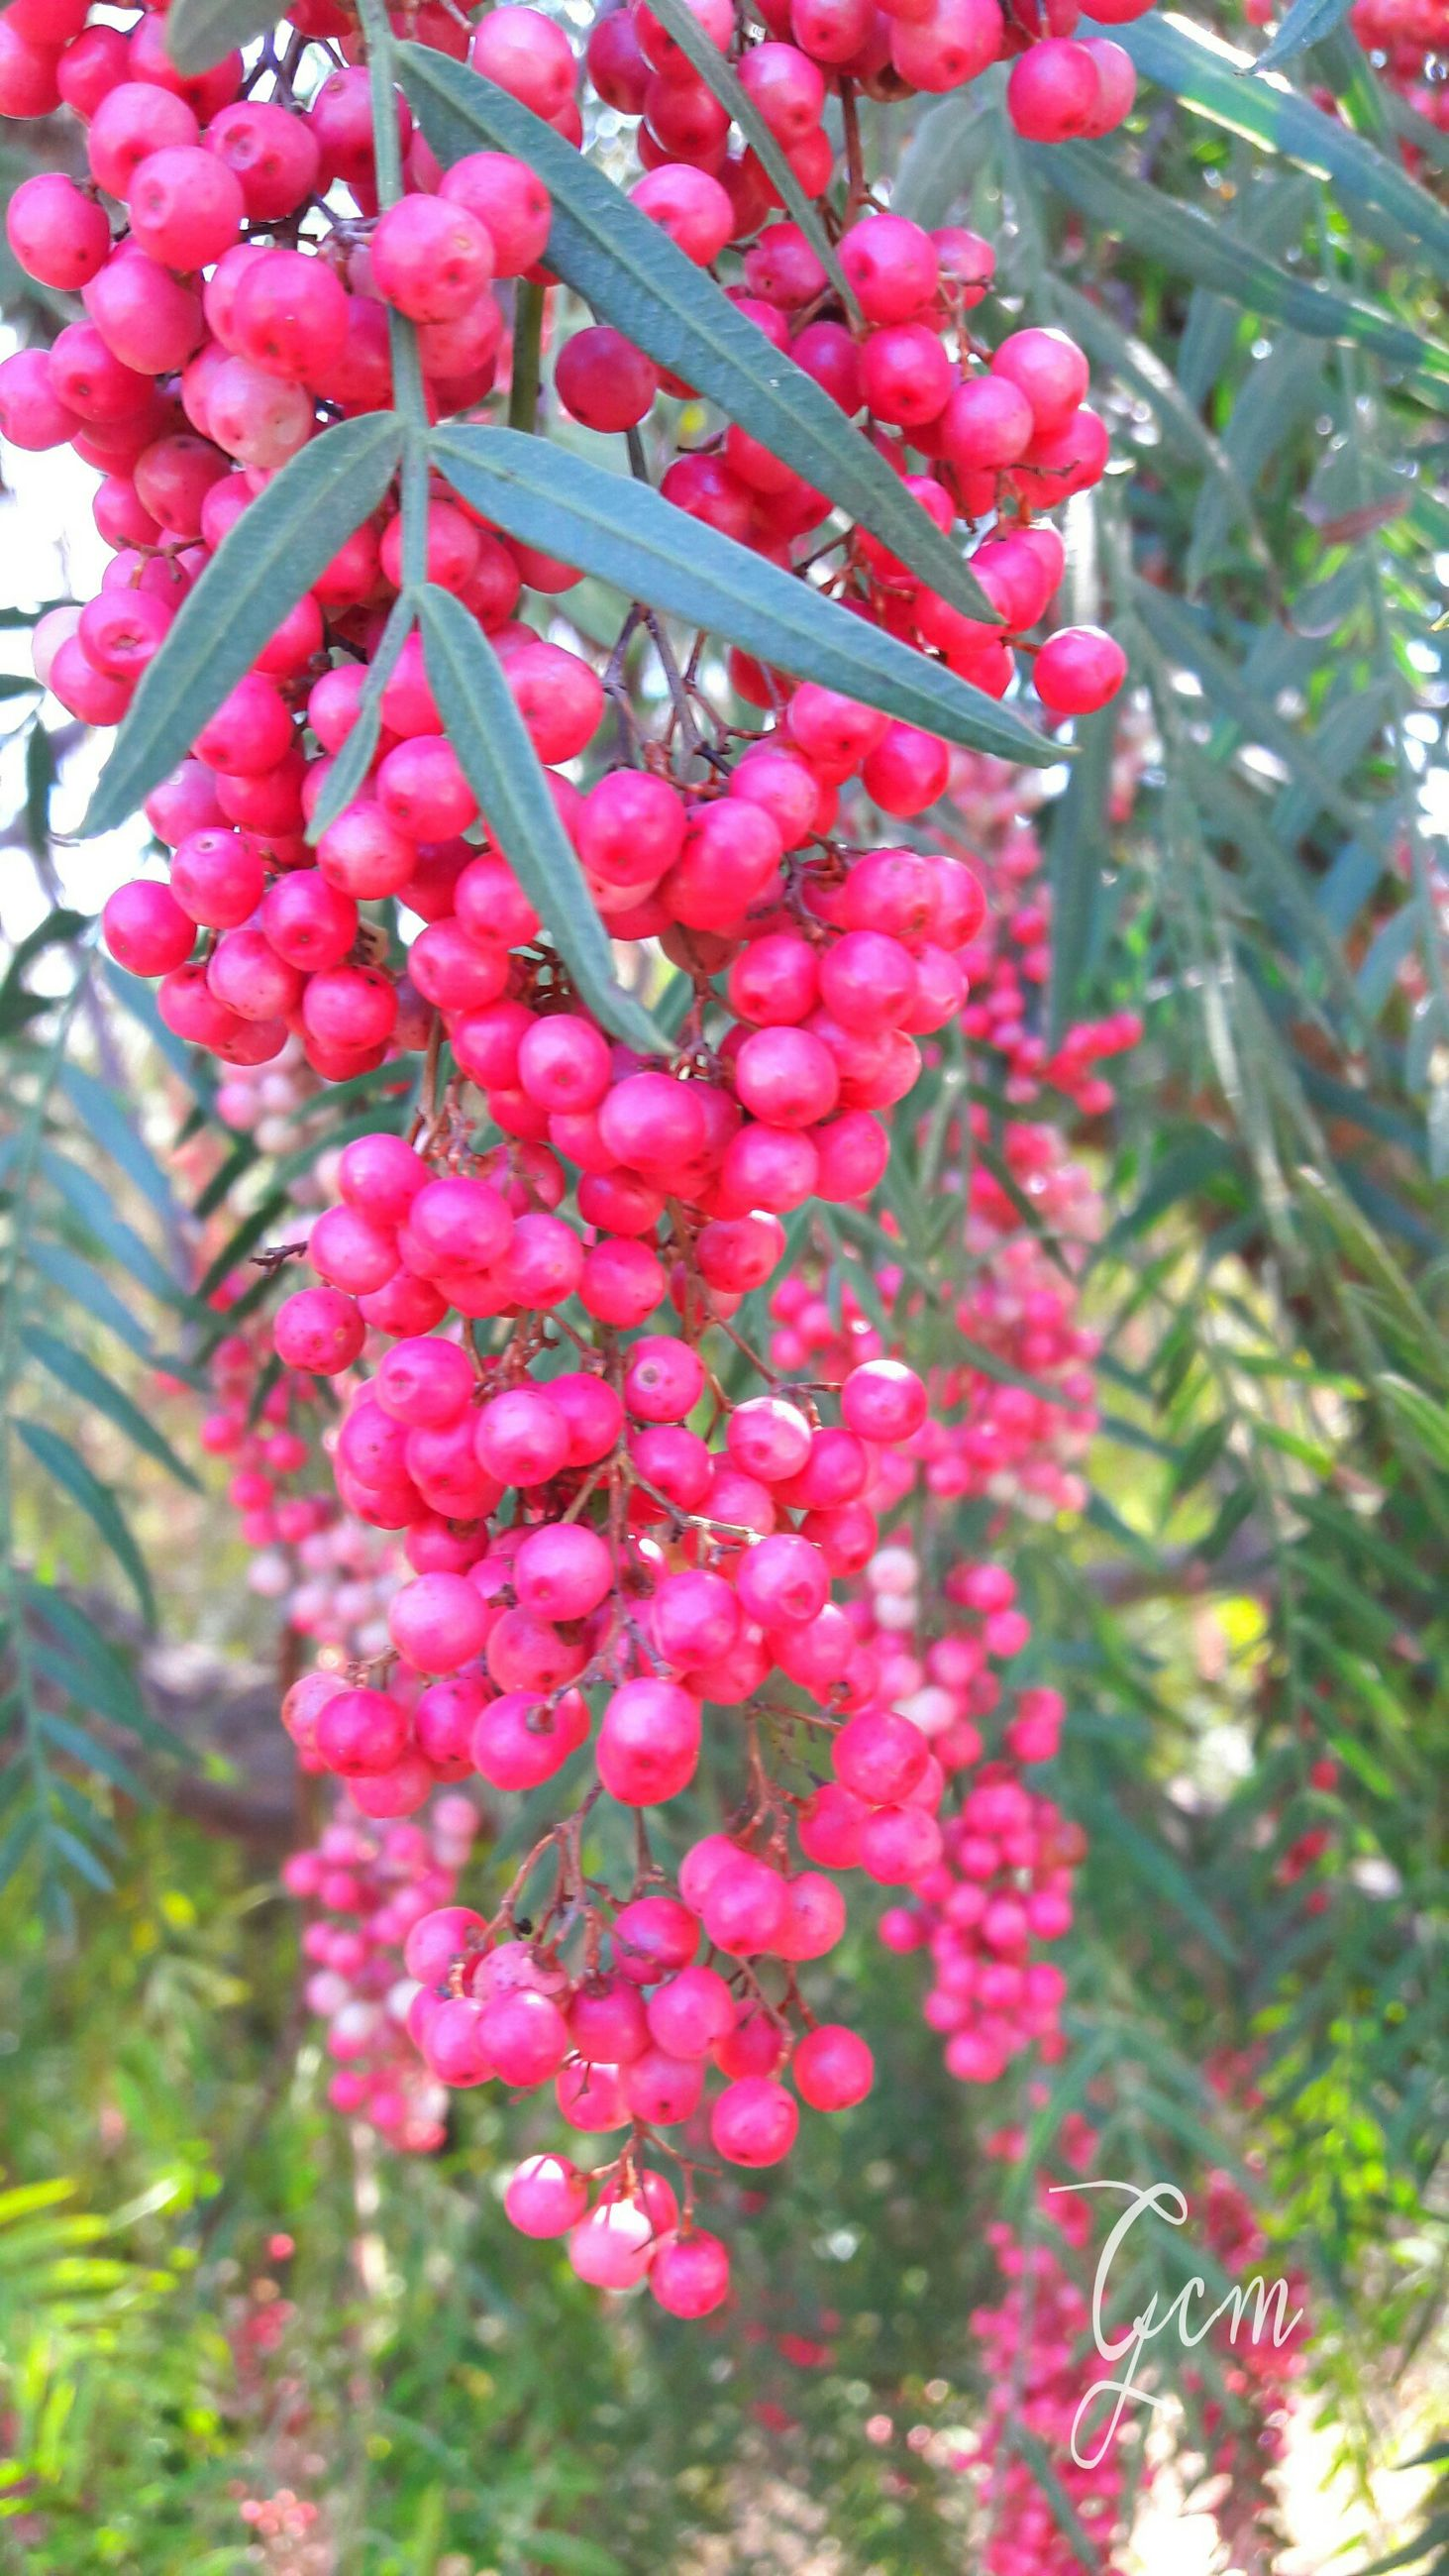 freshness, red, growth, flower, plant, close-up, food and drink, nature, fruit, beauty in nature, leaf, focus on foreground, fragility, abundance, food, day, healthy eating, selective focus, outdoors, no people